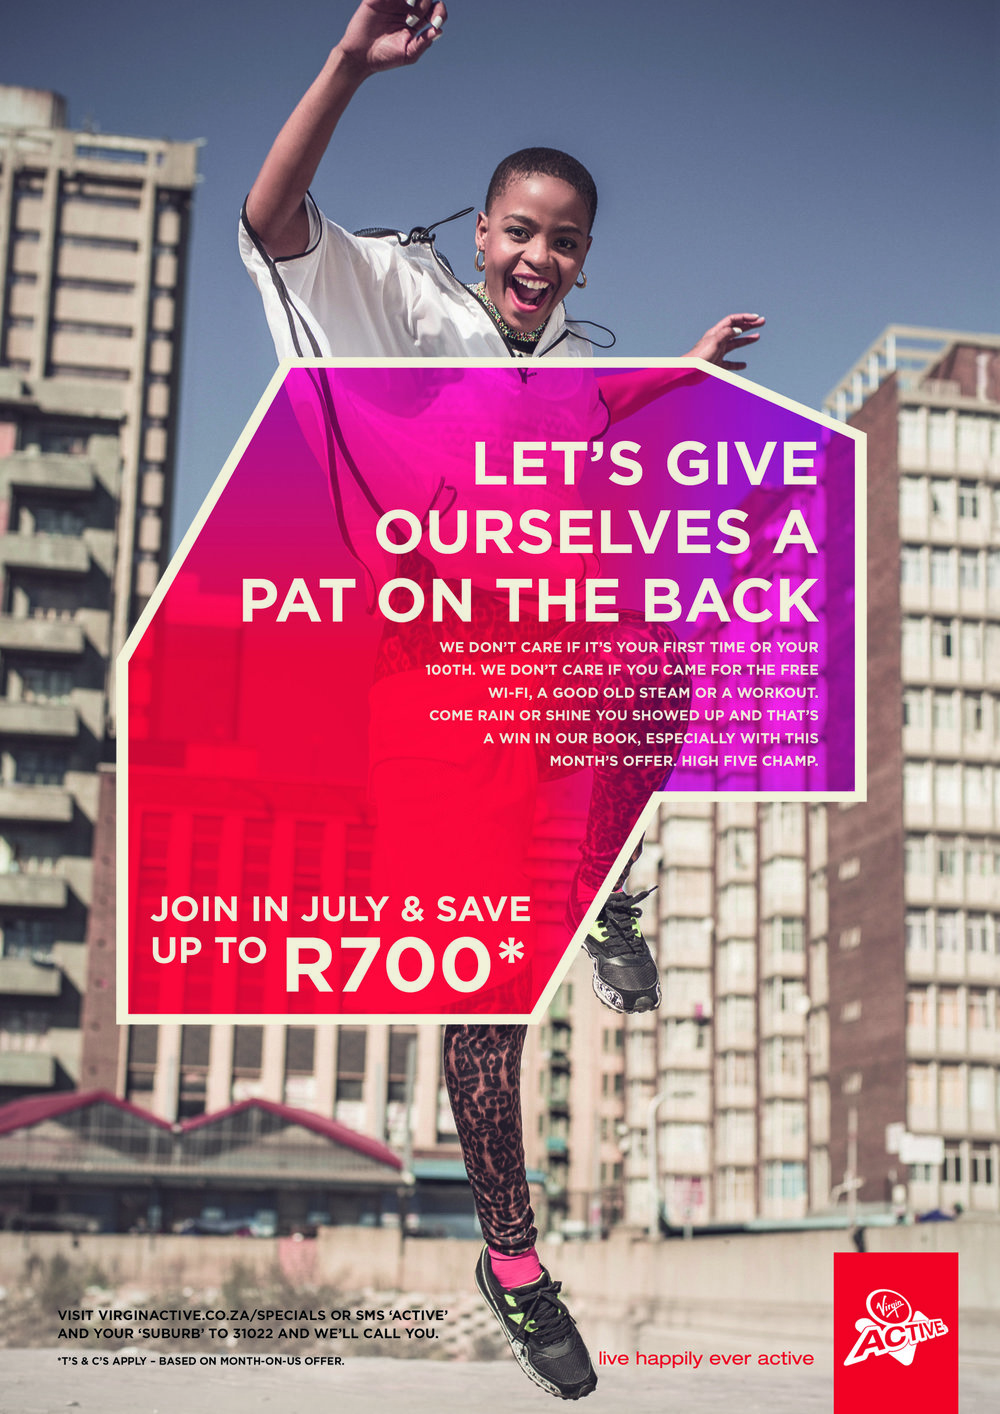 07Advertising Virgin Active 4 Manthe Ribane.jpg